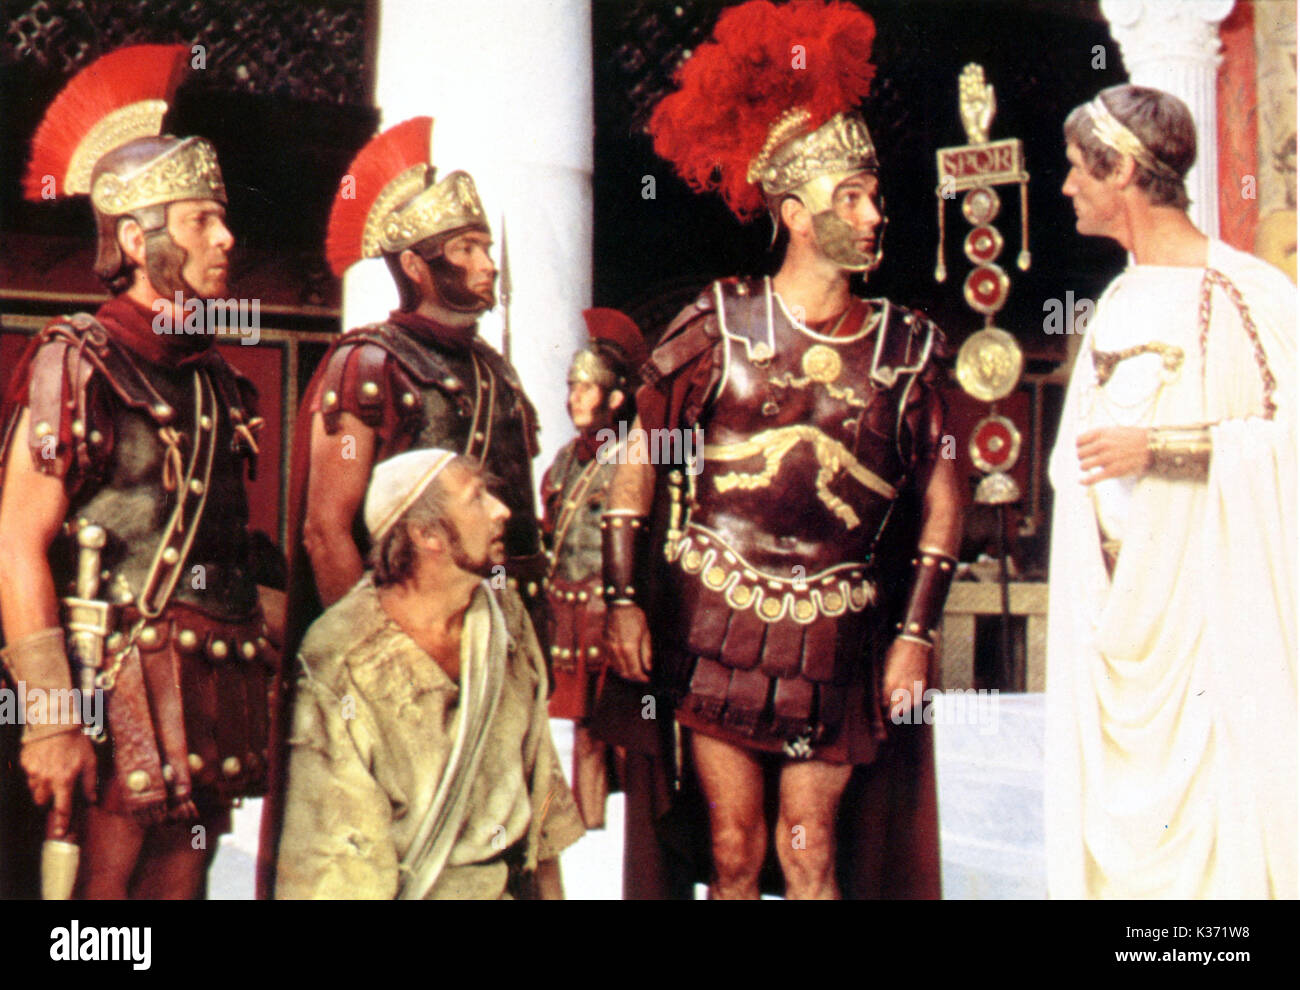 MONTY PYTHON'S LIFE OF BRIAN (UK 1979) HANDMADE FILMS/PYTHON PICTURES LTD ?, ?, GRAHAM CHAPMAN, JOHN CLEESE, MICHAEL PALIN Picture from the Rnald Grant Archive     Date: 1979 - Stock Image